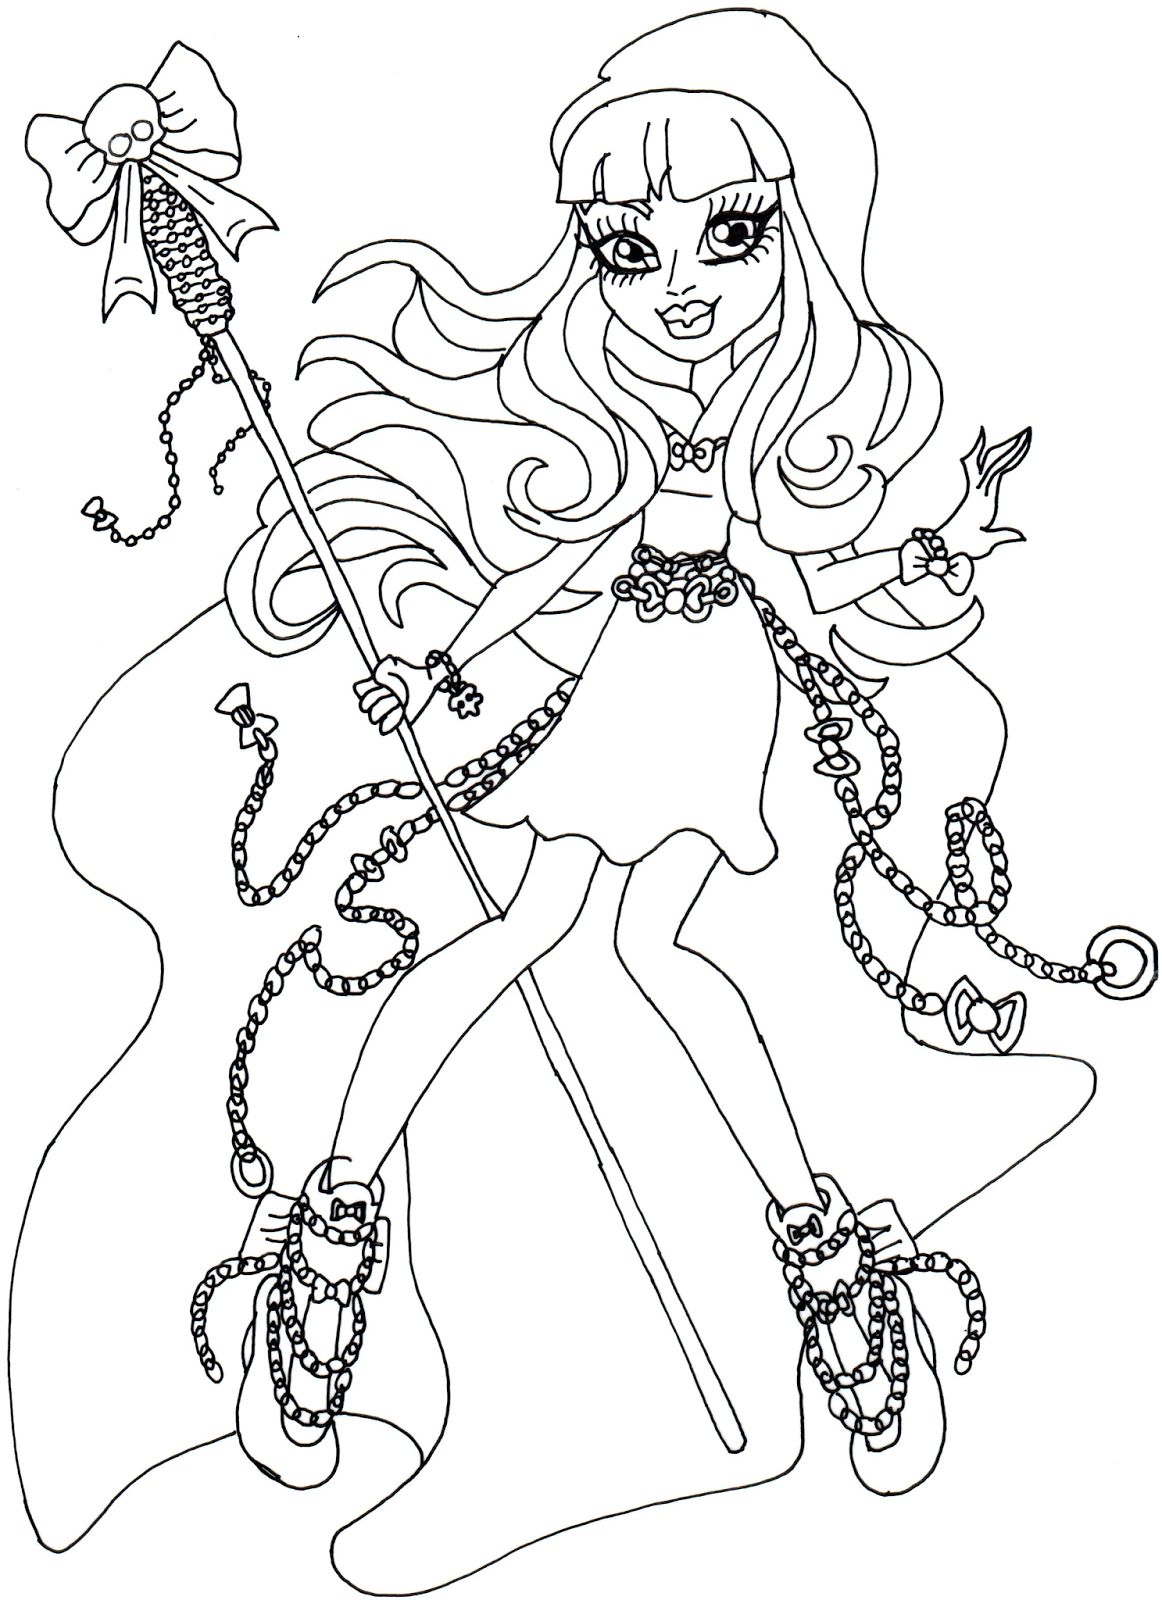 Free Printable Monster High Coloring Pages River Styxx Monster